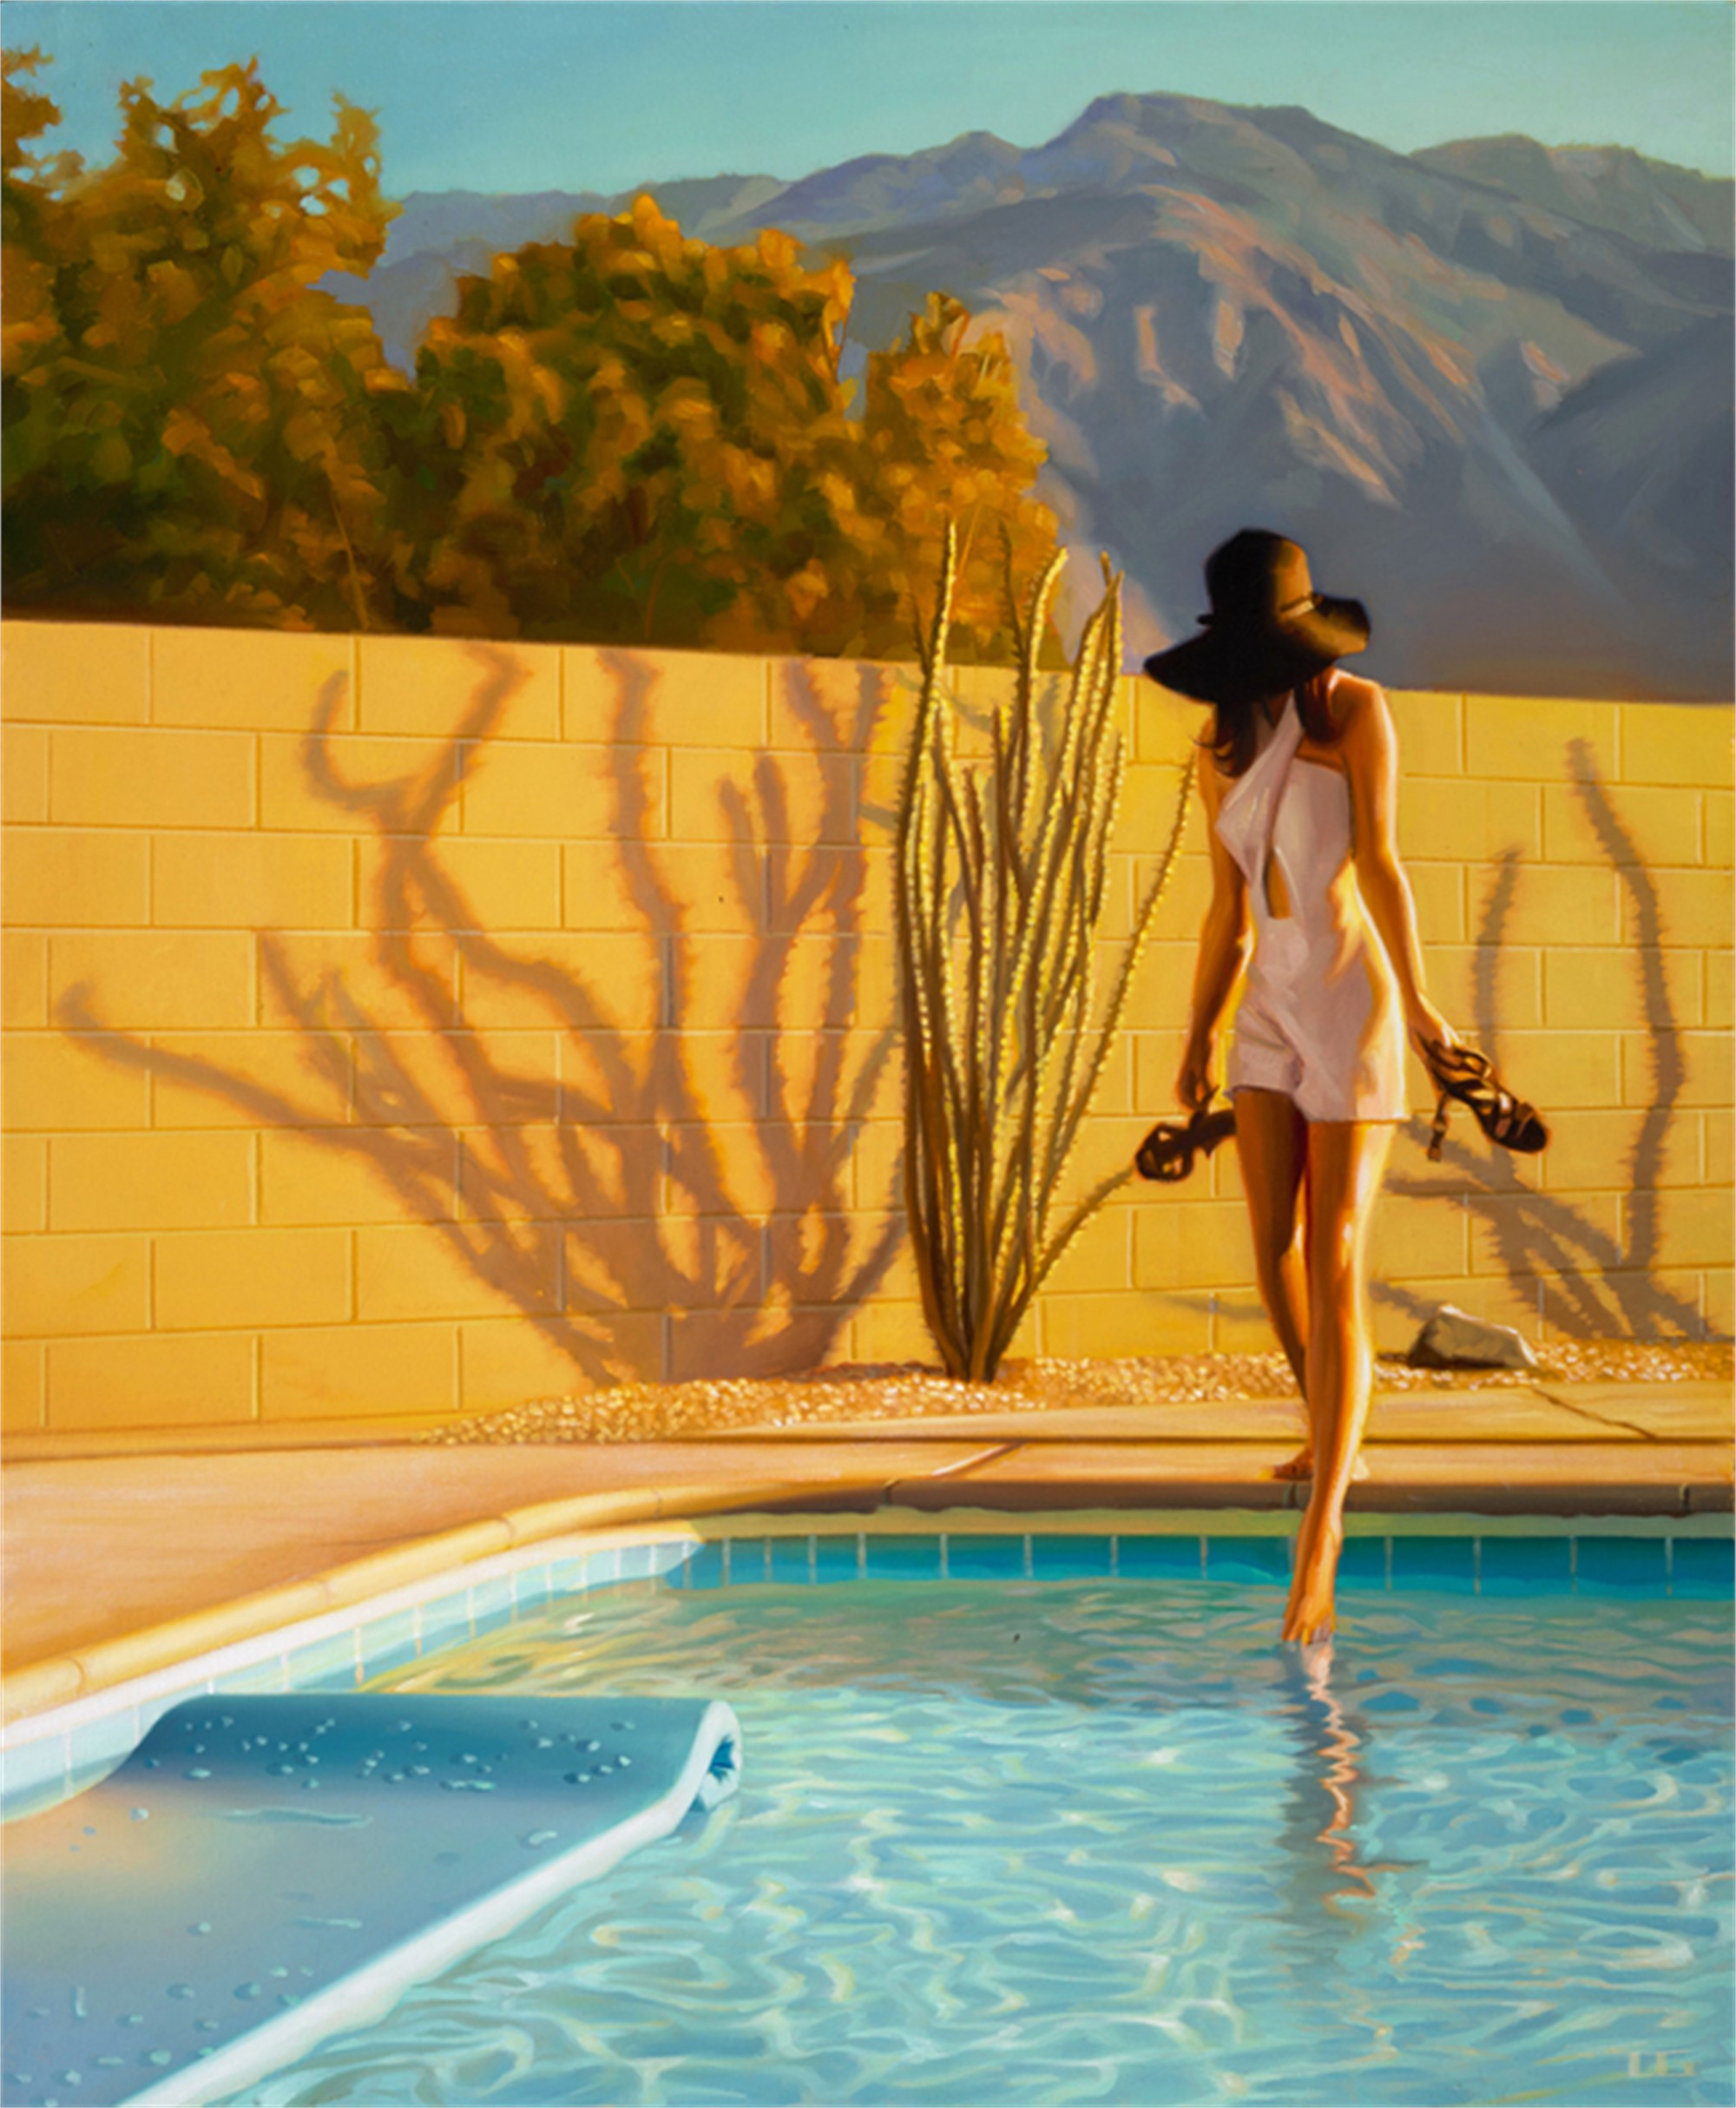 Ocotillo Shadows (S/N) by Carrie Graber